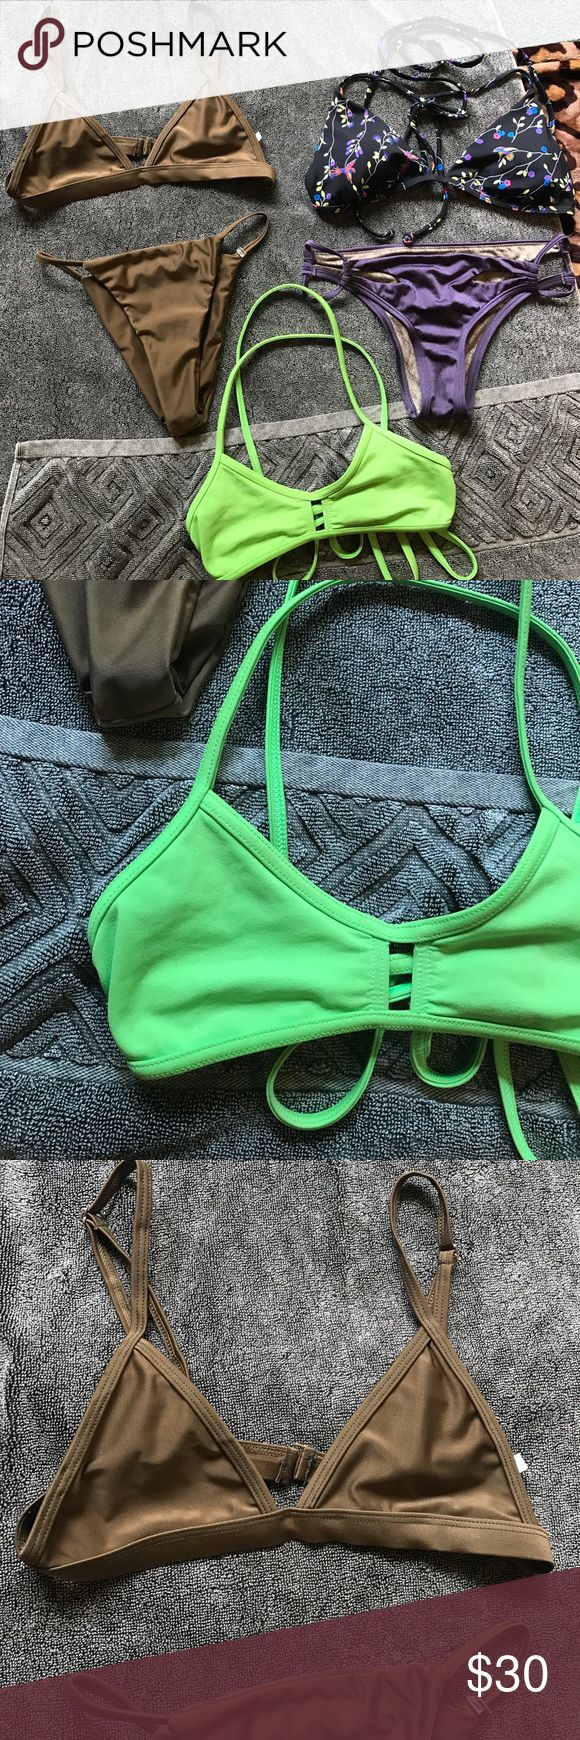 Bikini bundle 👙 Bikini bundle! None have tags, the lime green one I really don't know the brand but it's super cute, pushes your boobs up nice 😆 the brown one has a teeny tag that says small but no brand either! Brazilian cut-high leg. The last one, the purple bottoms are size small and from VS. has little slits on the front and back! The top has a teeny Hurley tag, black with bright colored flowers and birds, very cute. A coral colored inside, you could probably wear it reversed. Not…